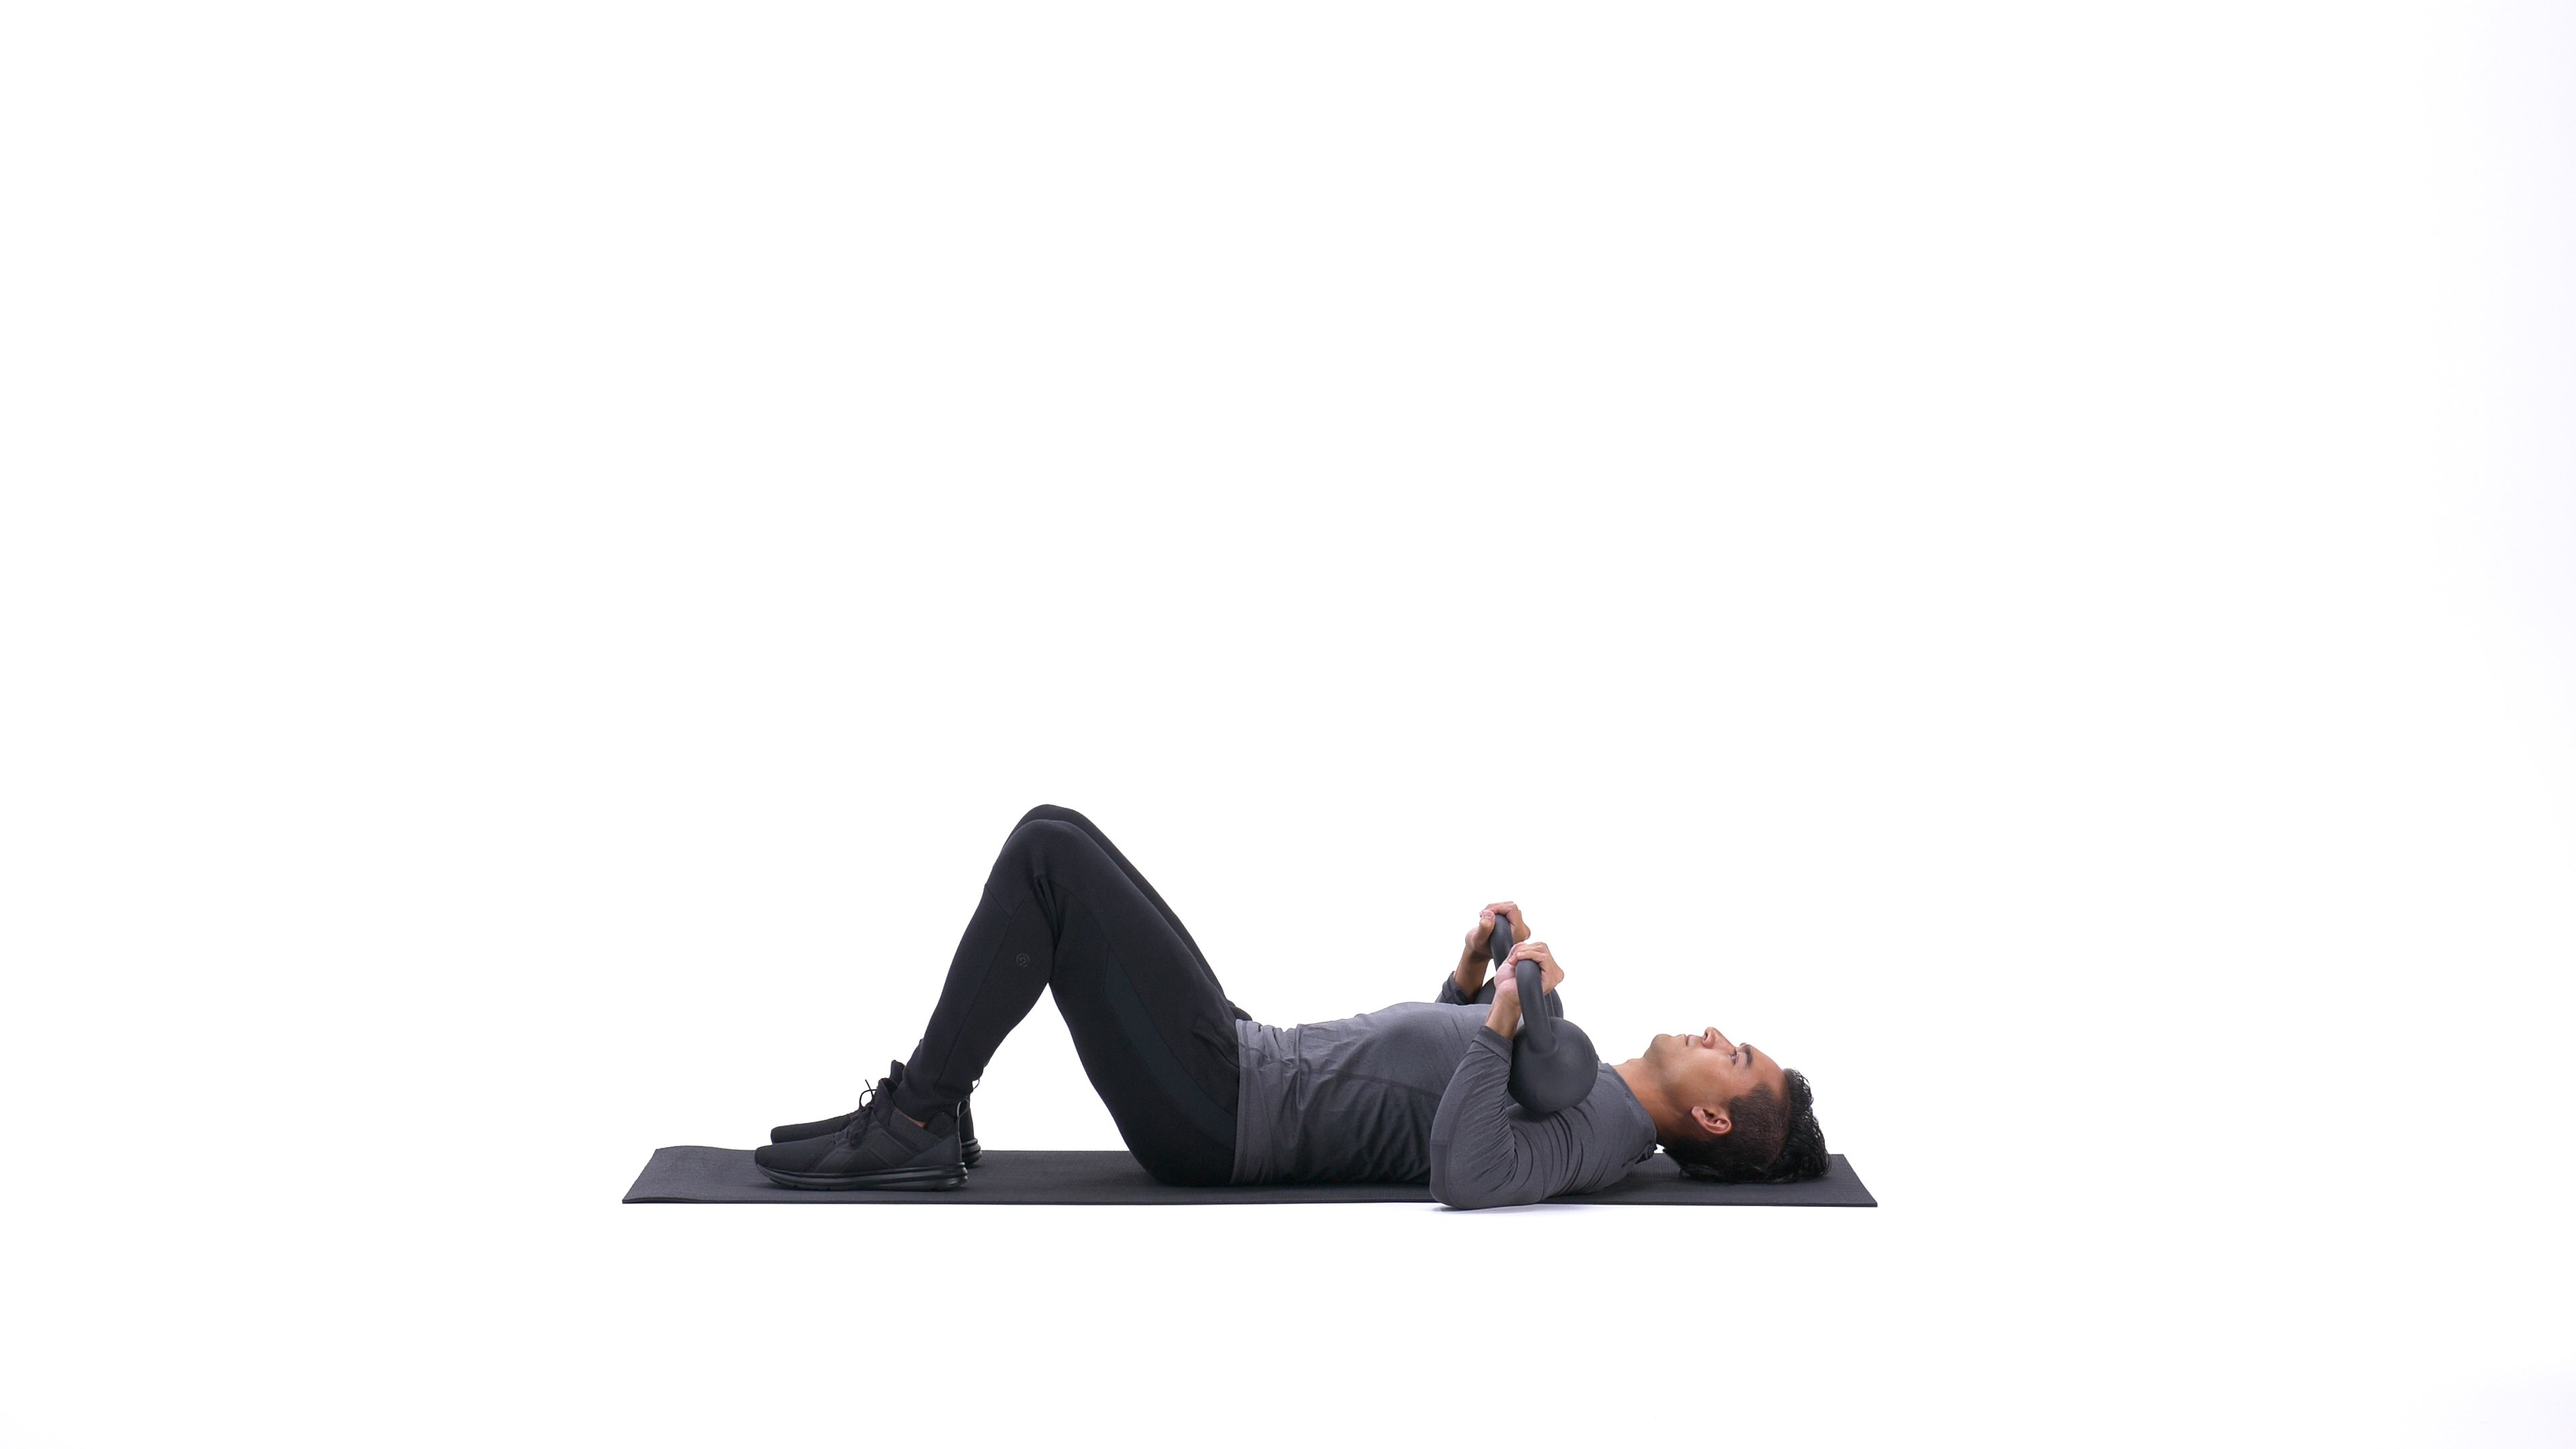 Kettlebell alternating floor press image